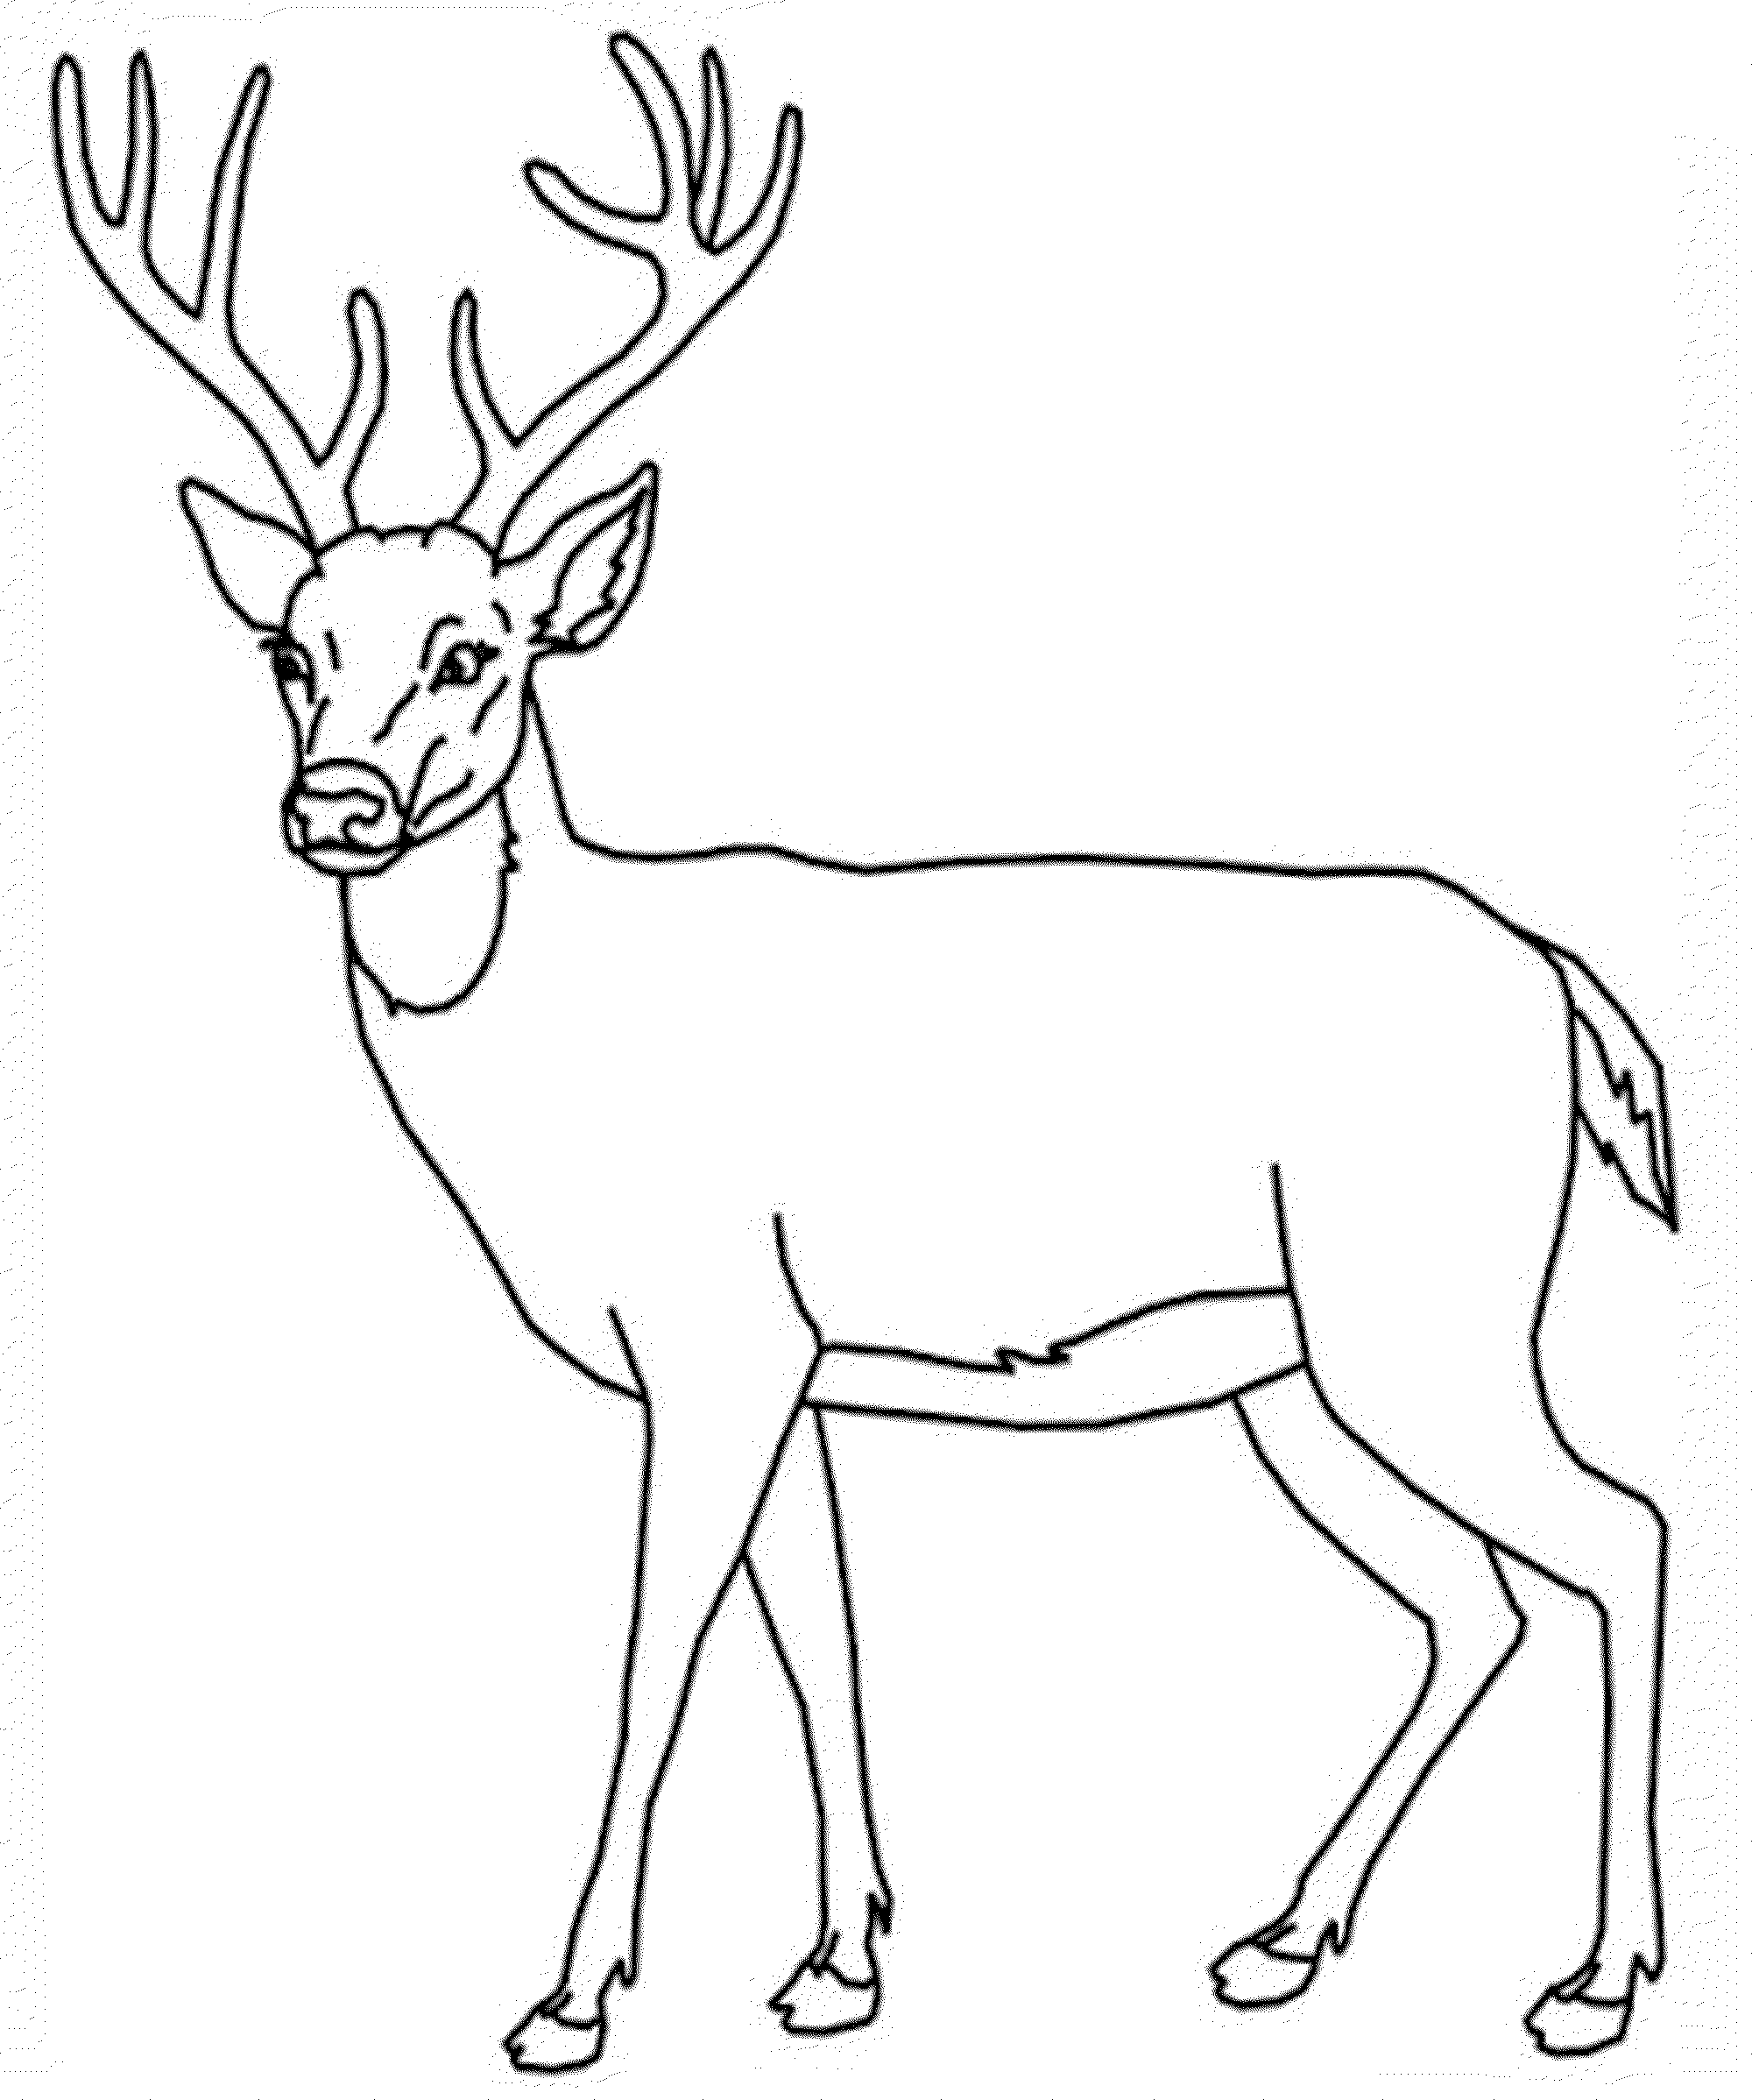 2000x2397 Buck Deer Coloring Pages Browning Deer Logo Coloring Pages